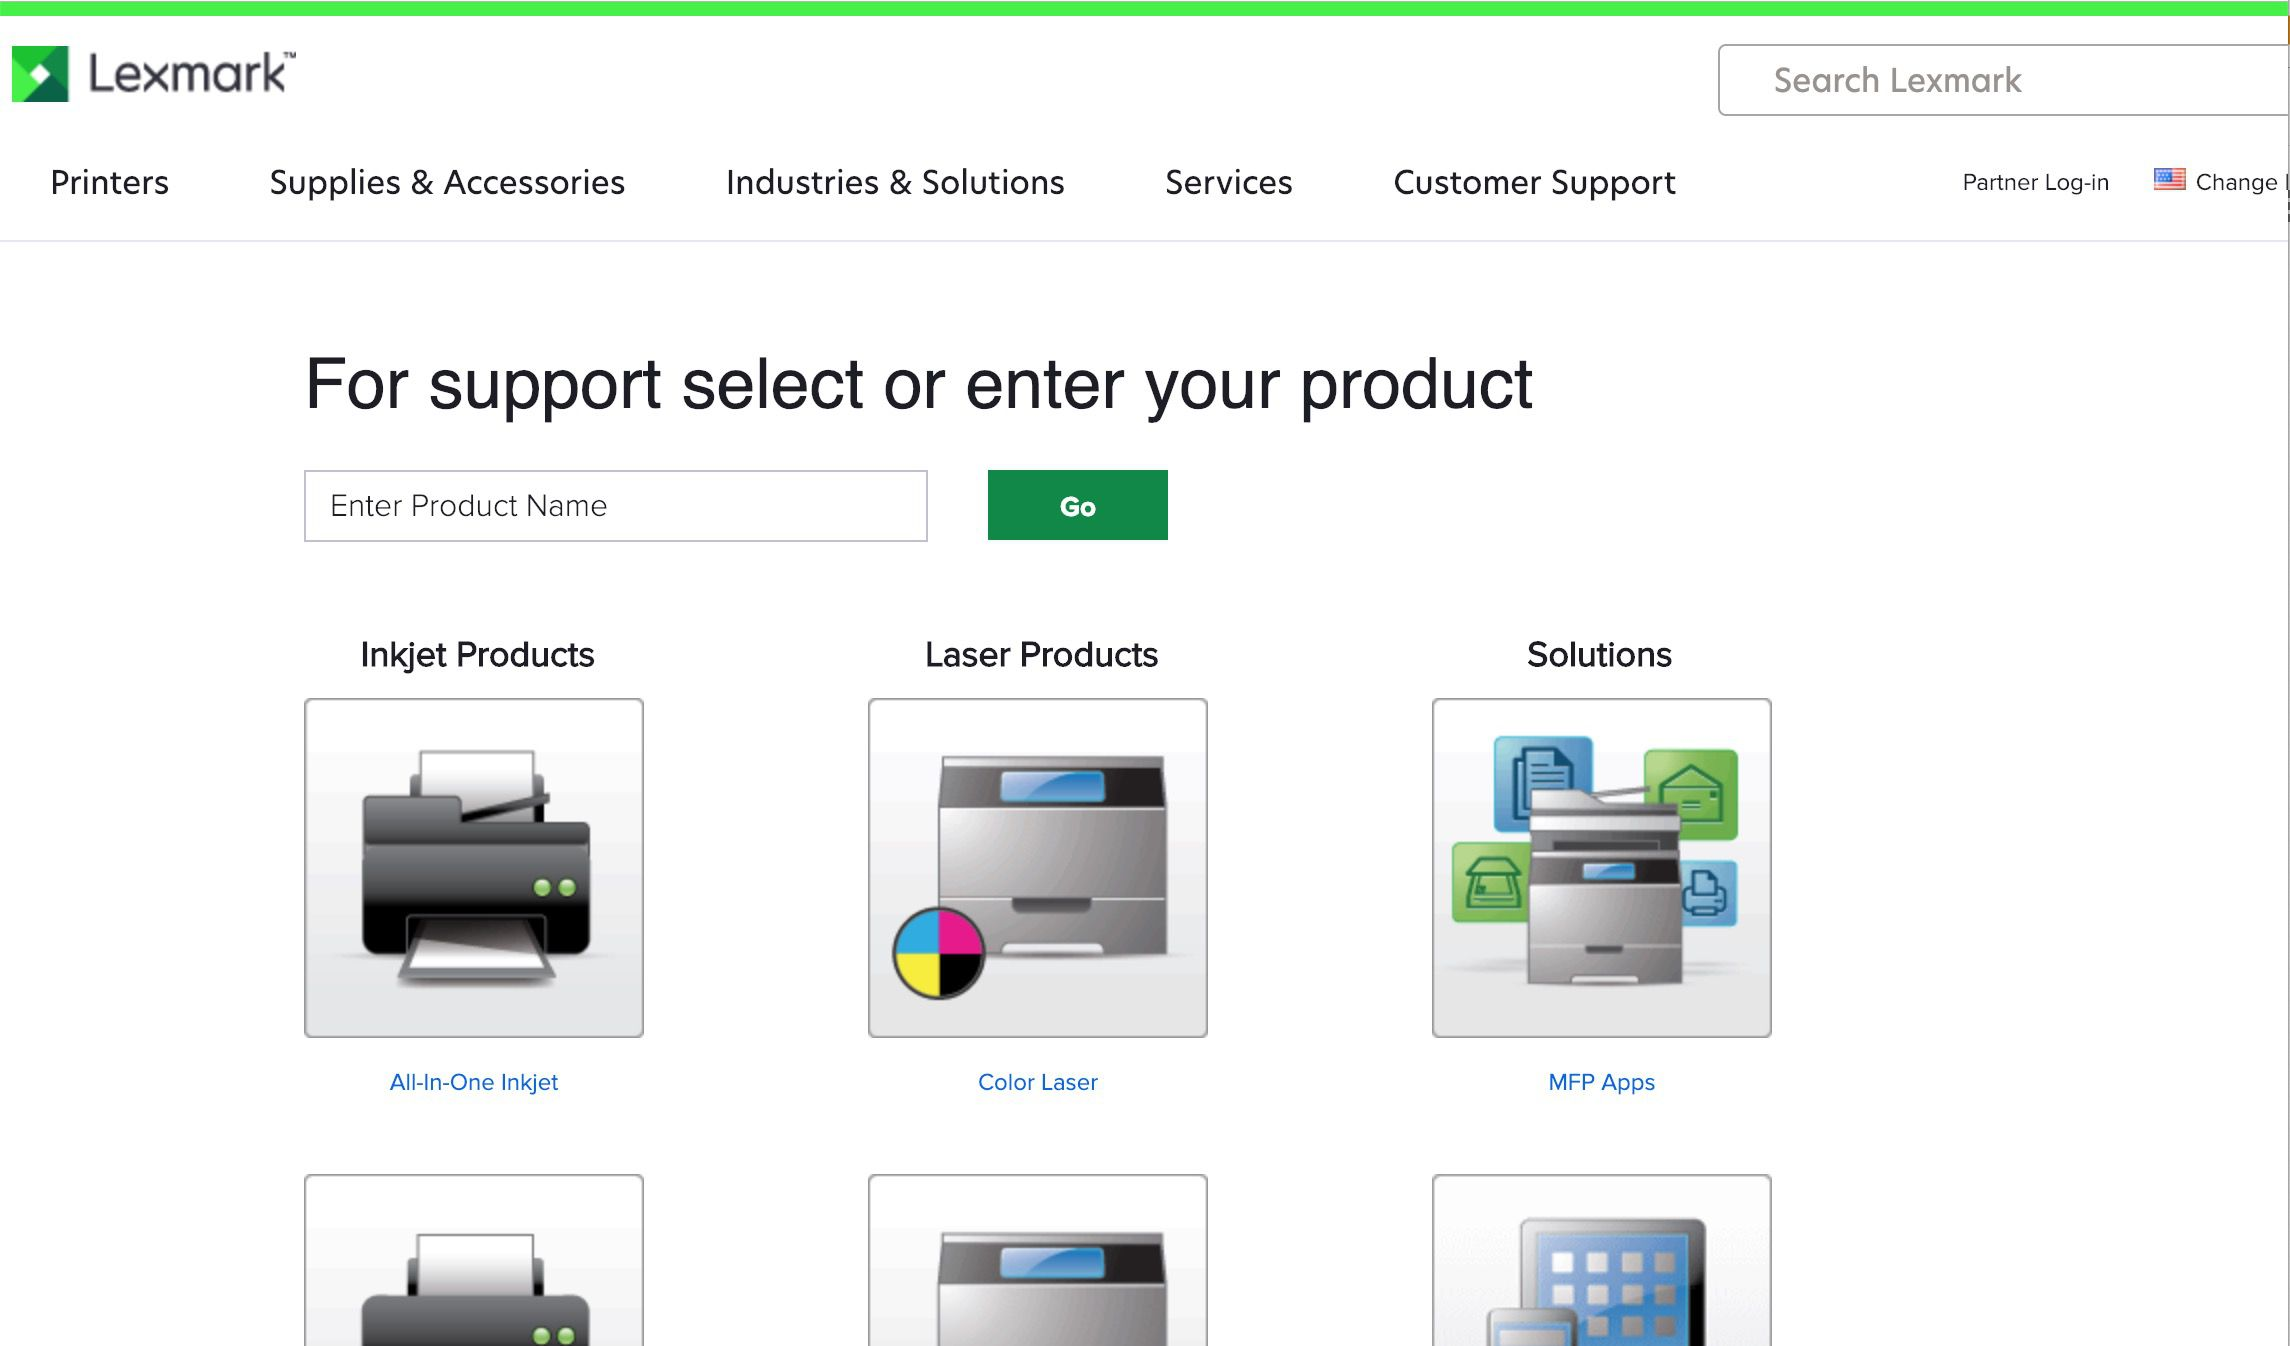 Lexmark support page